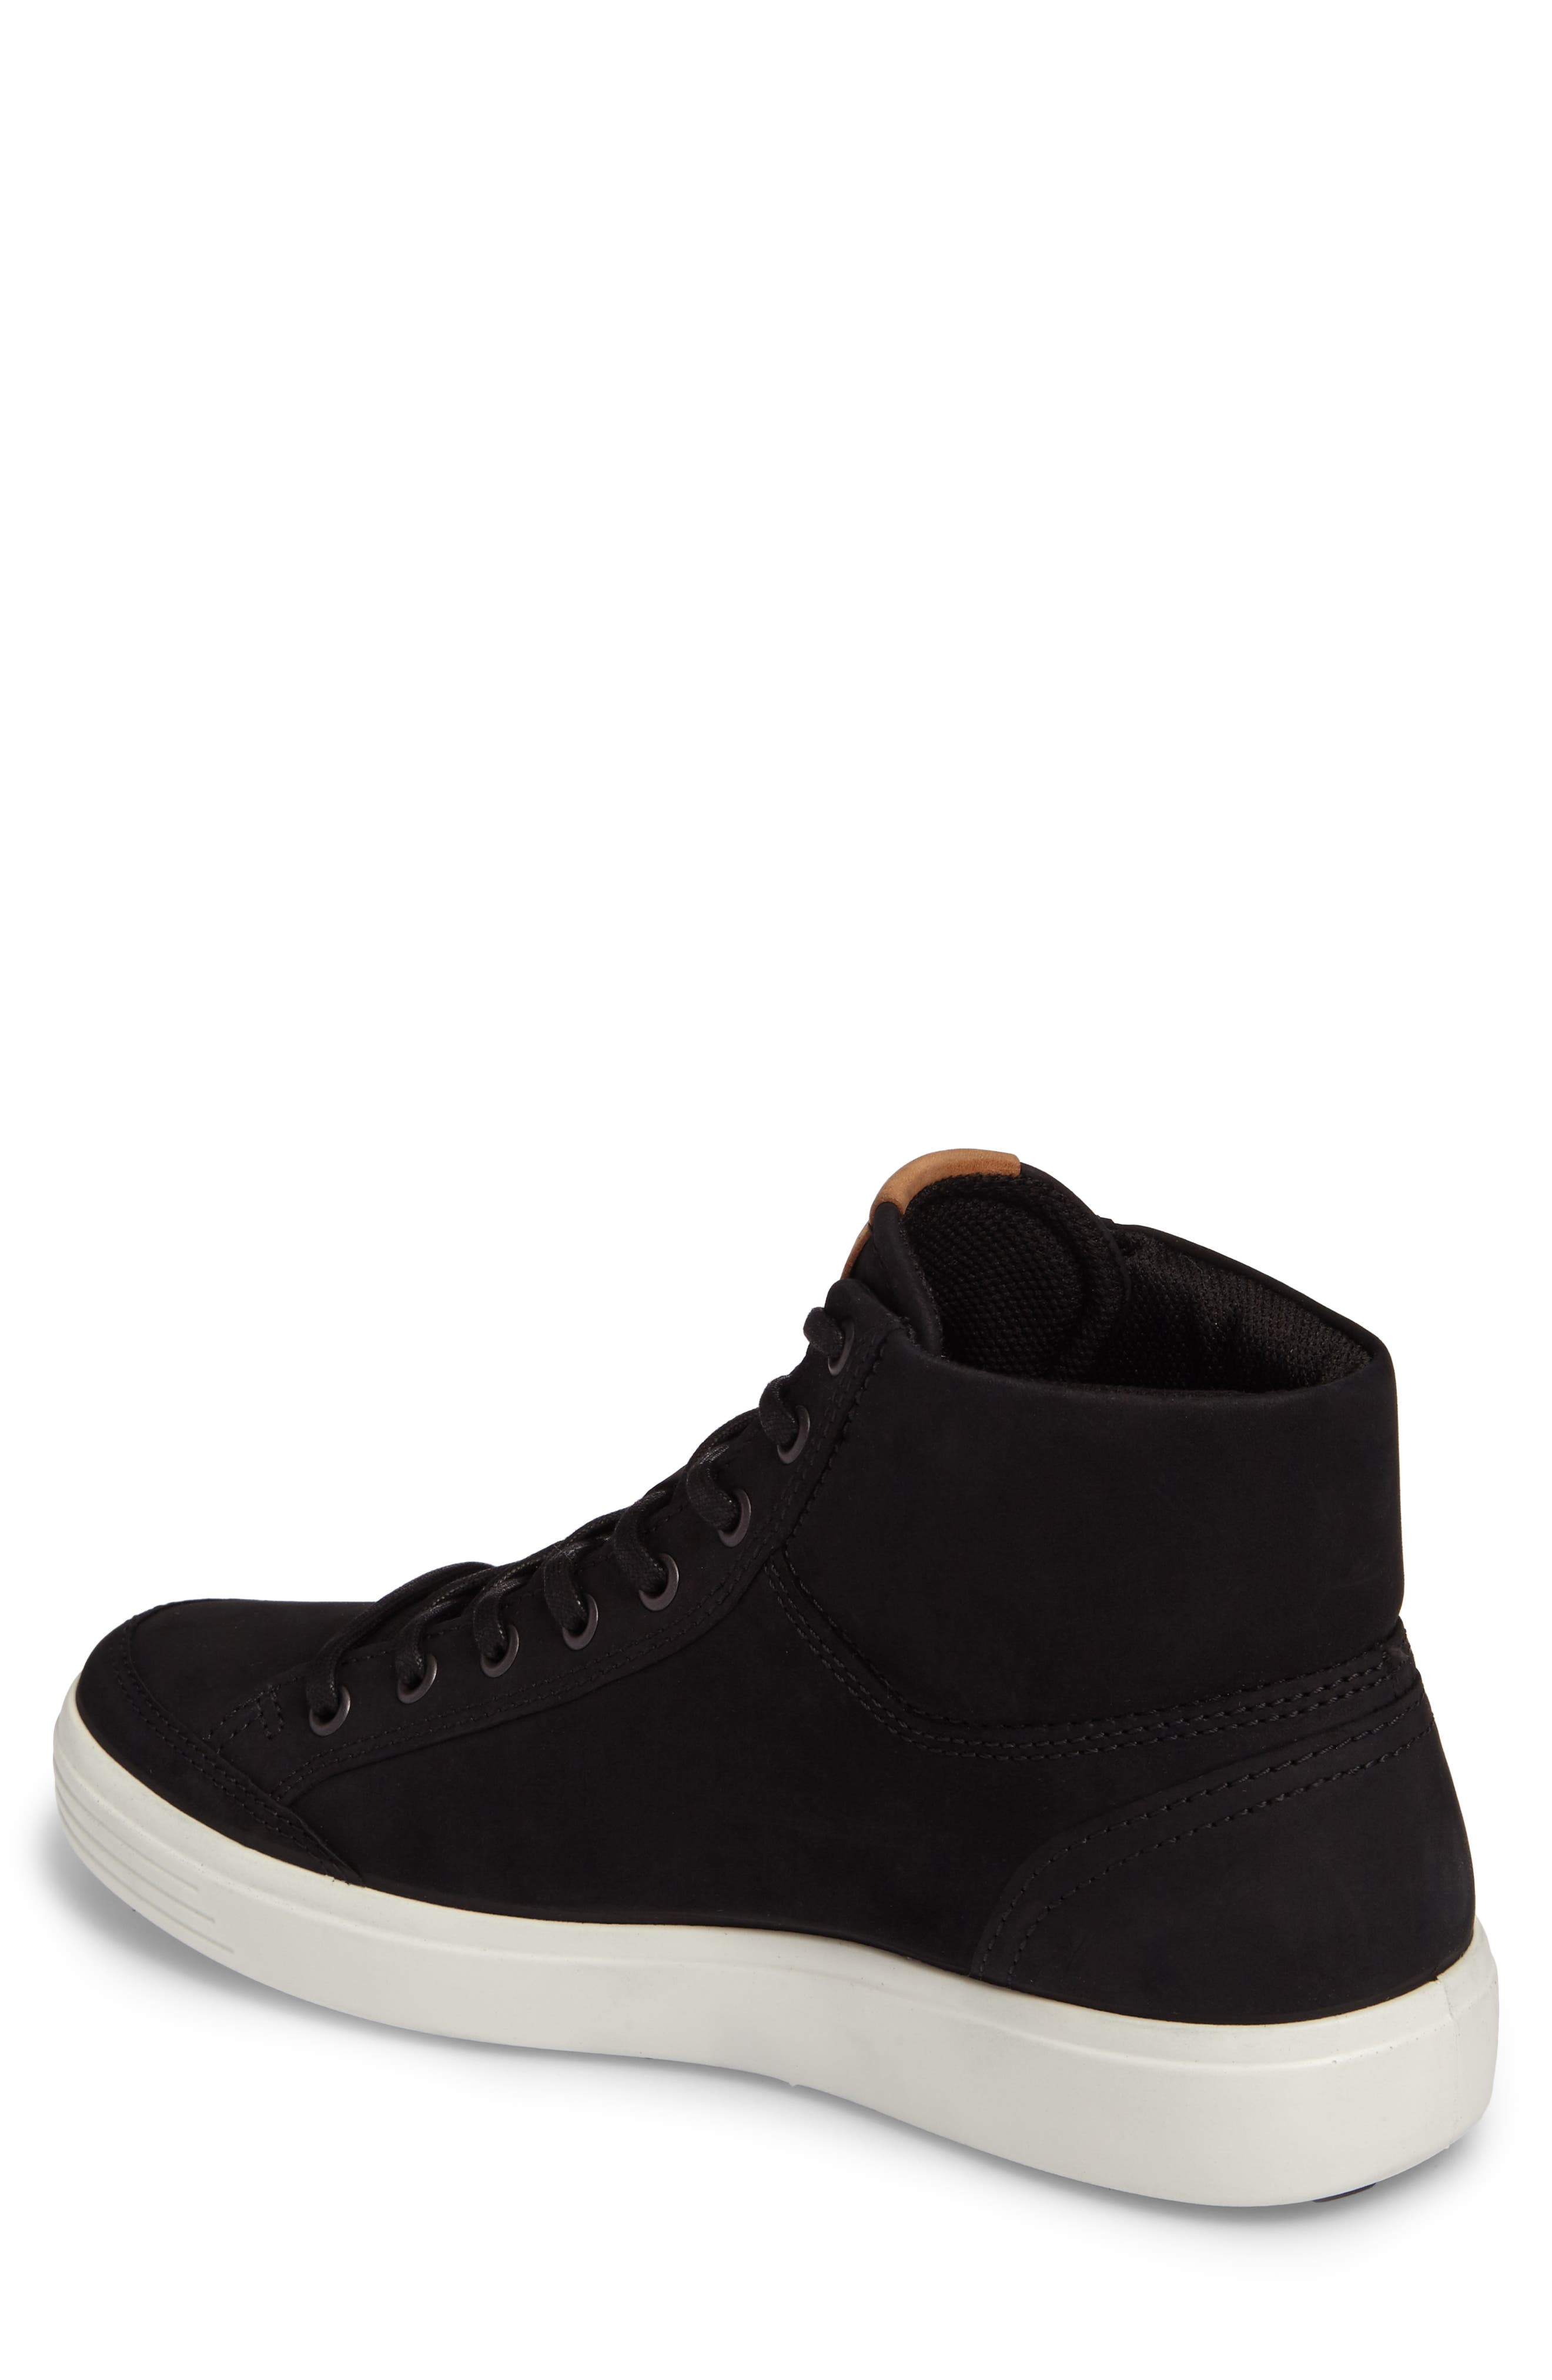 Soft 7 Sneaker,                             Alternate thumbnail 2, color,                             BLACK LEATHER